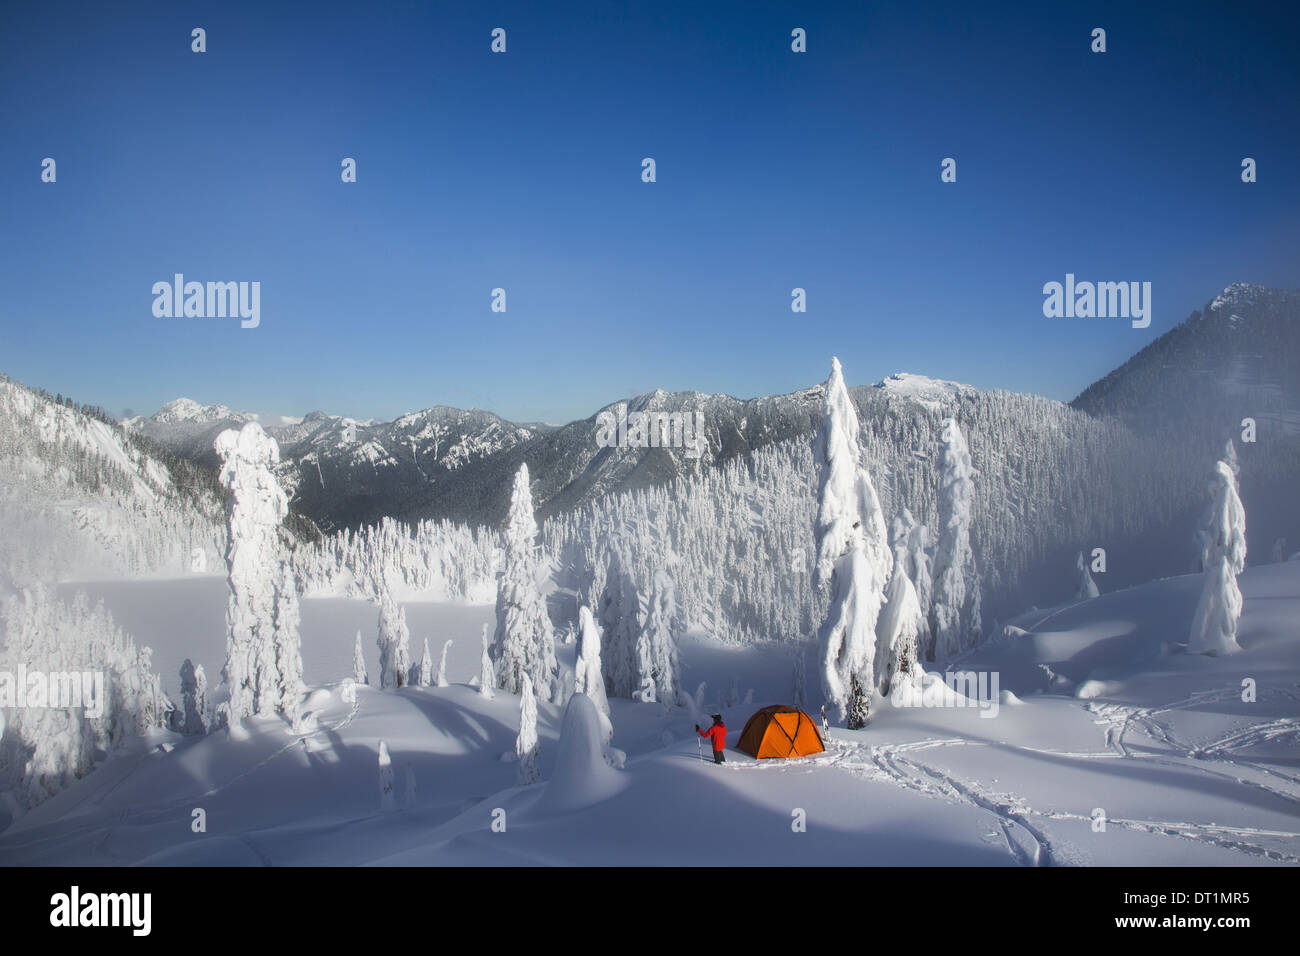 Michael Hanson walks through deep powder to his campsite in the snow covered Cascade Mountains overlooking Snow Lake - Stock Image